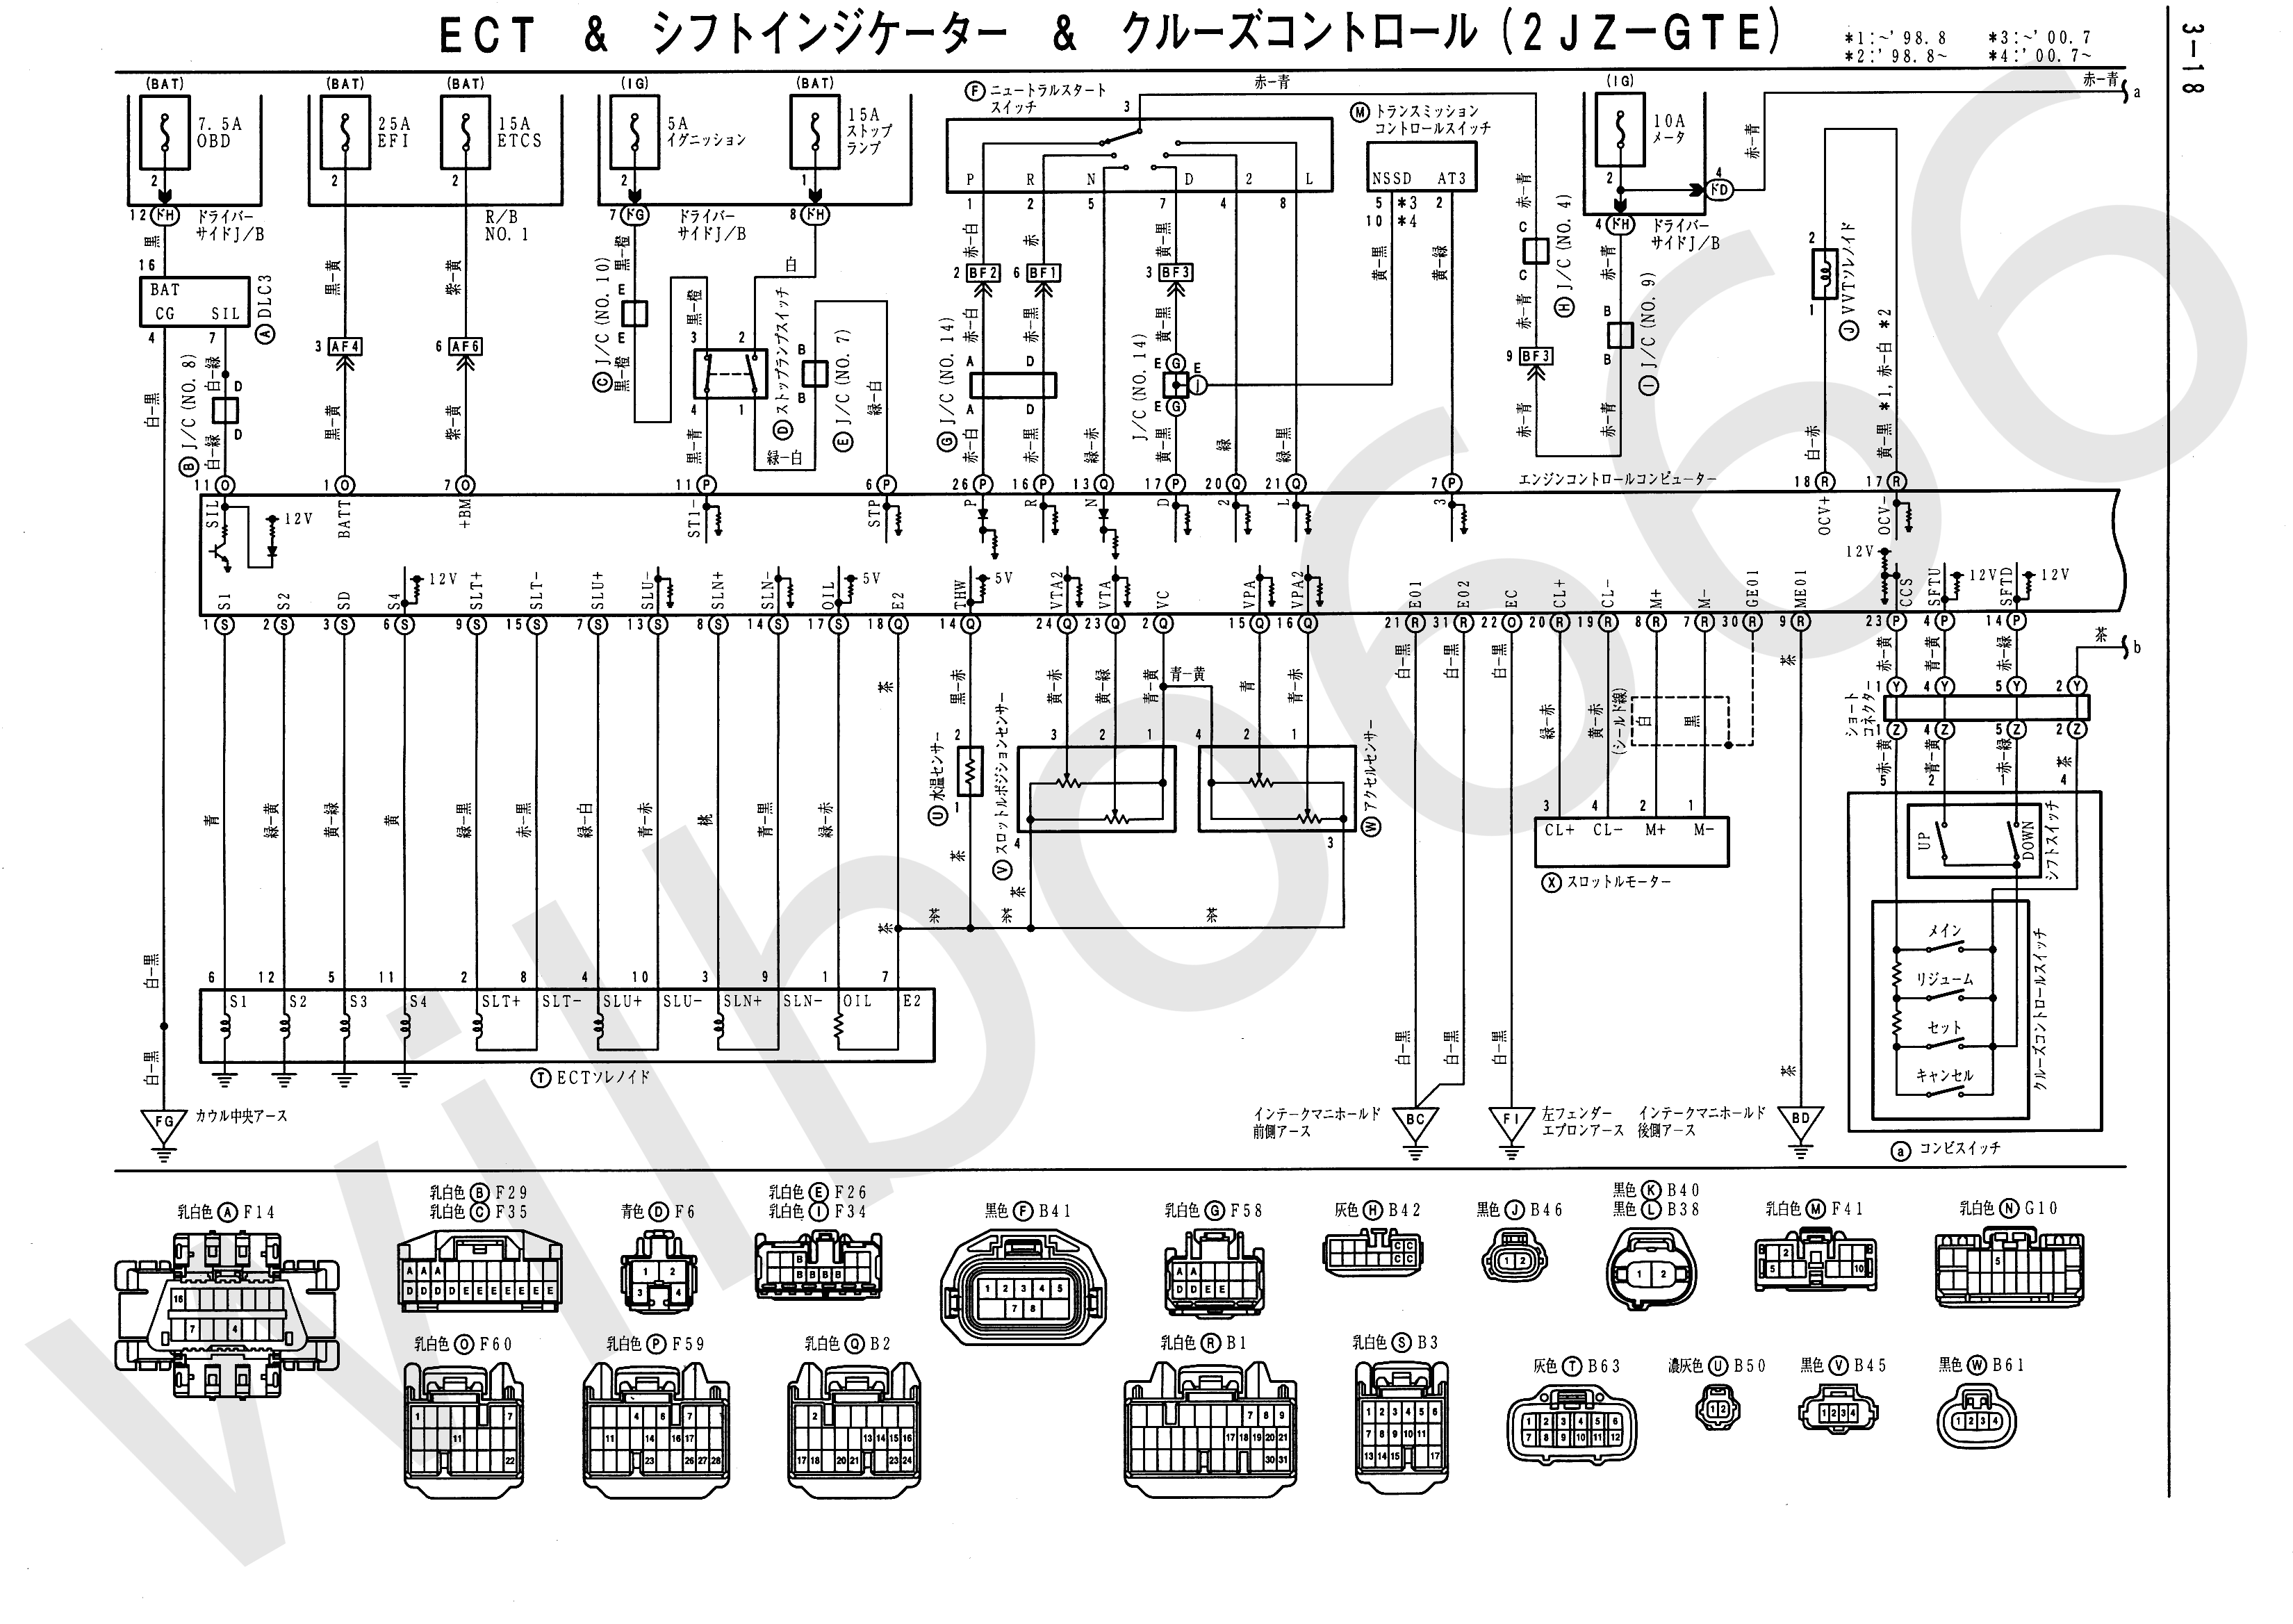 JZS161 Electrical Wiring Diagram 6748505 3 18 2jz wiring diagram basic home electrical wiring diagrams \u2022 wiring 1jz vvti wiring harness at soozxer.org